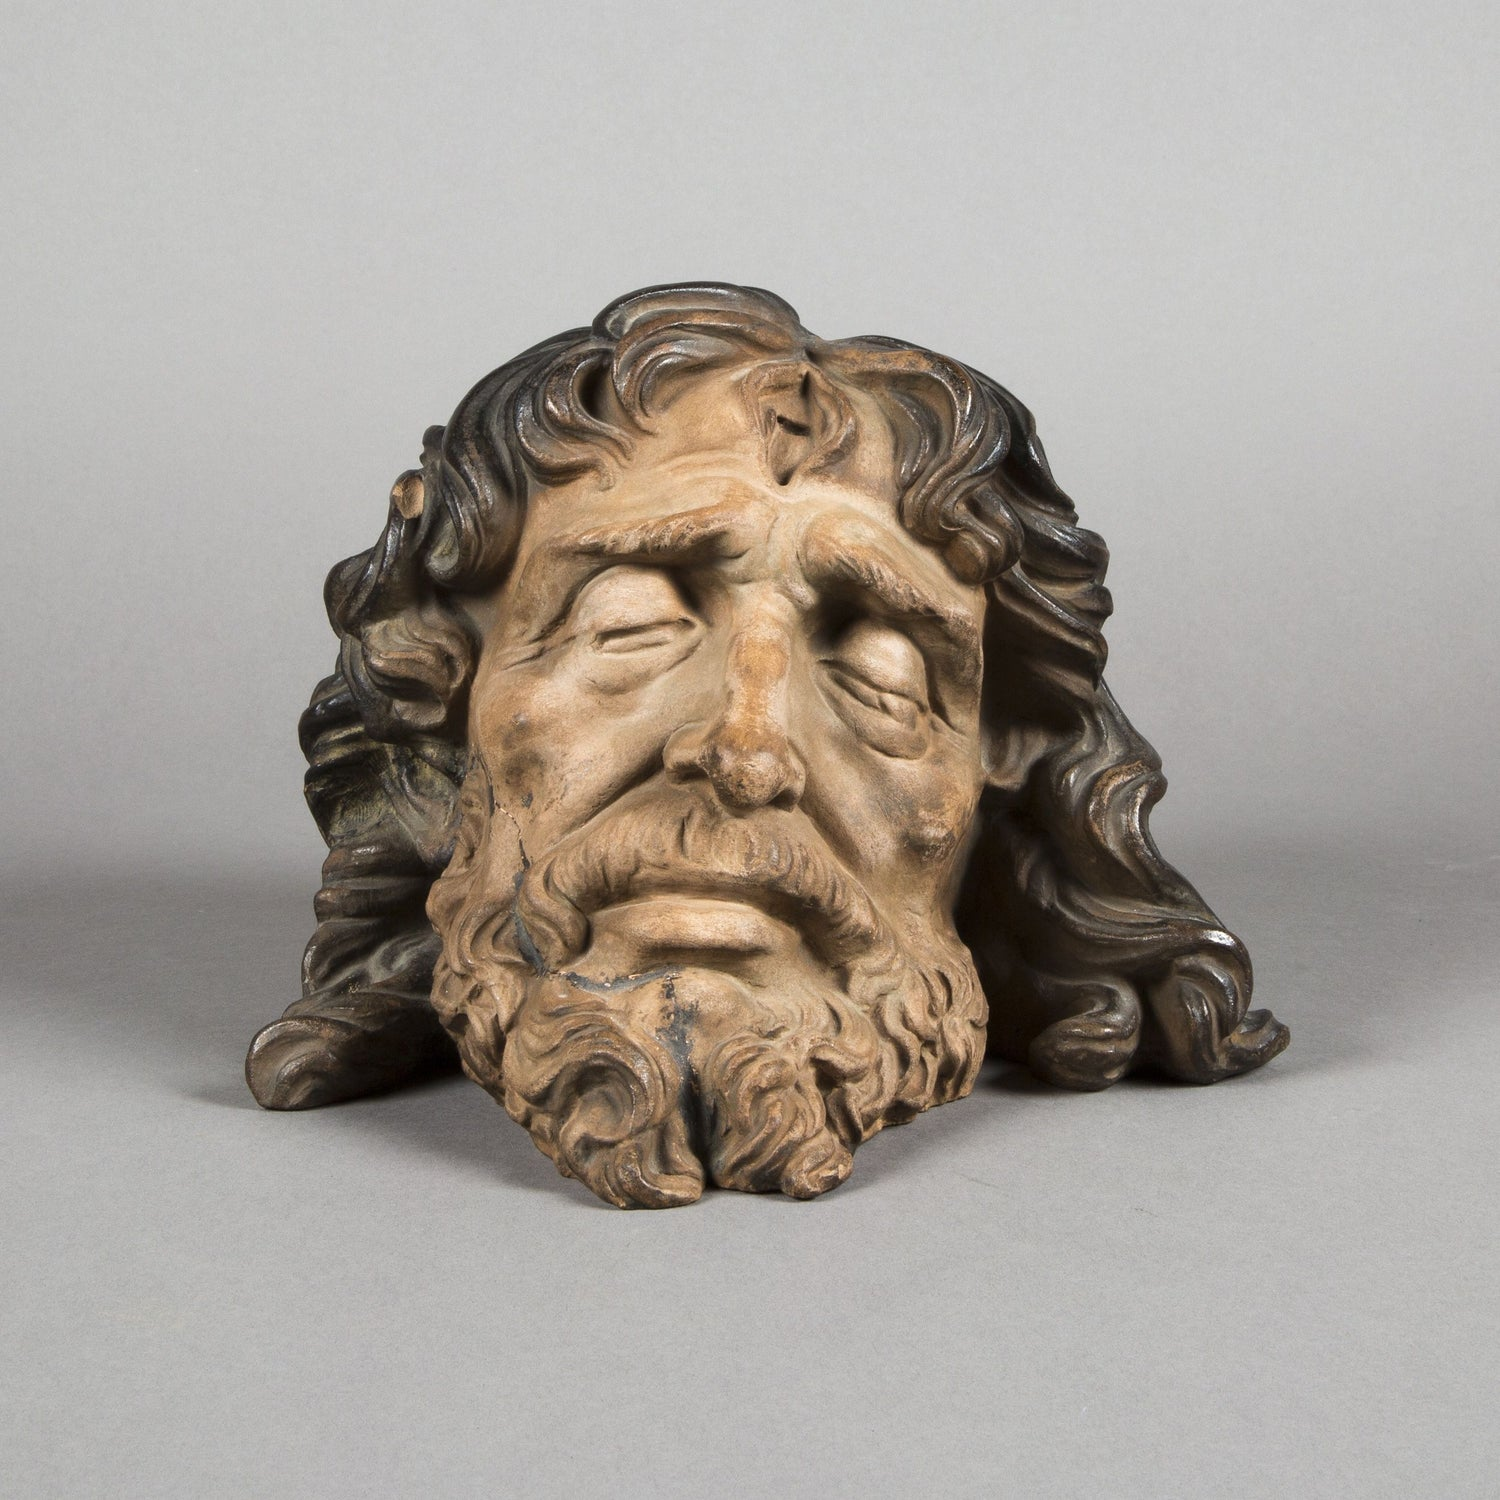 Image of Head of Goliath, after Verrocchio